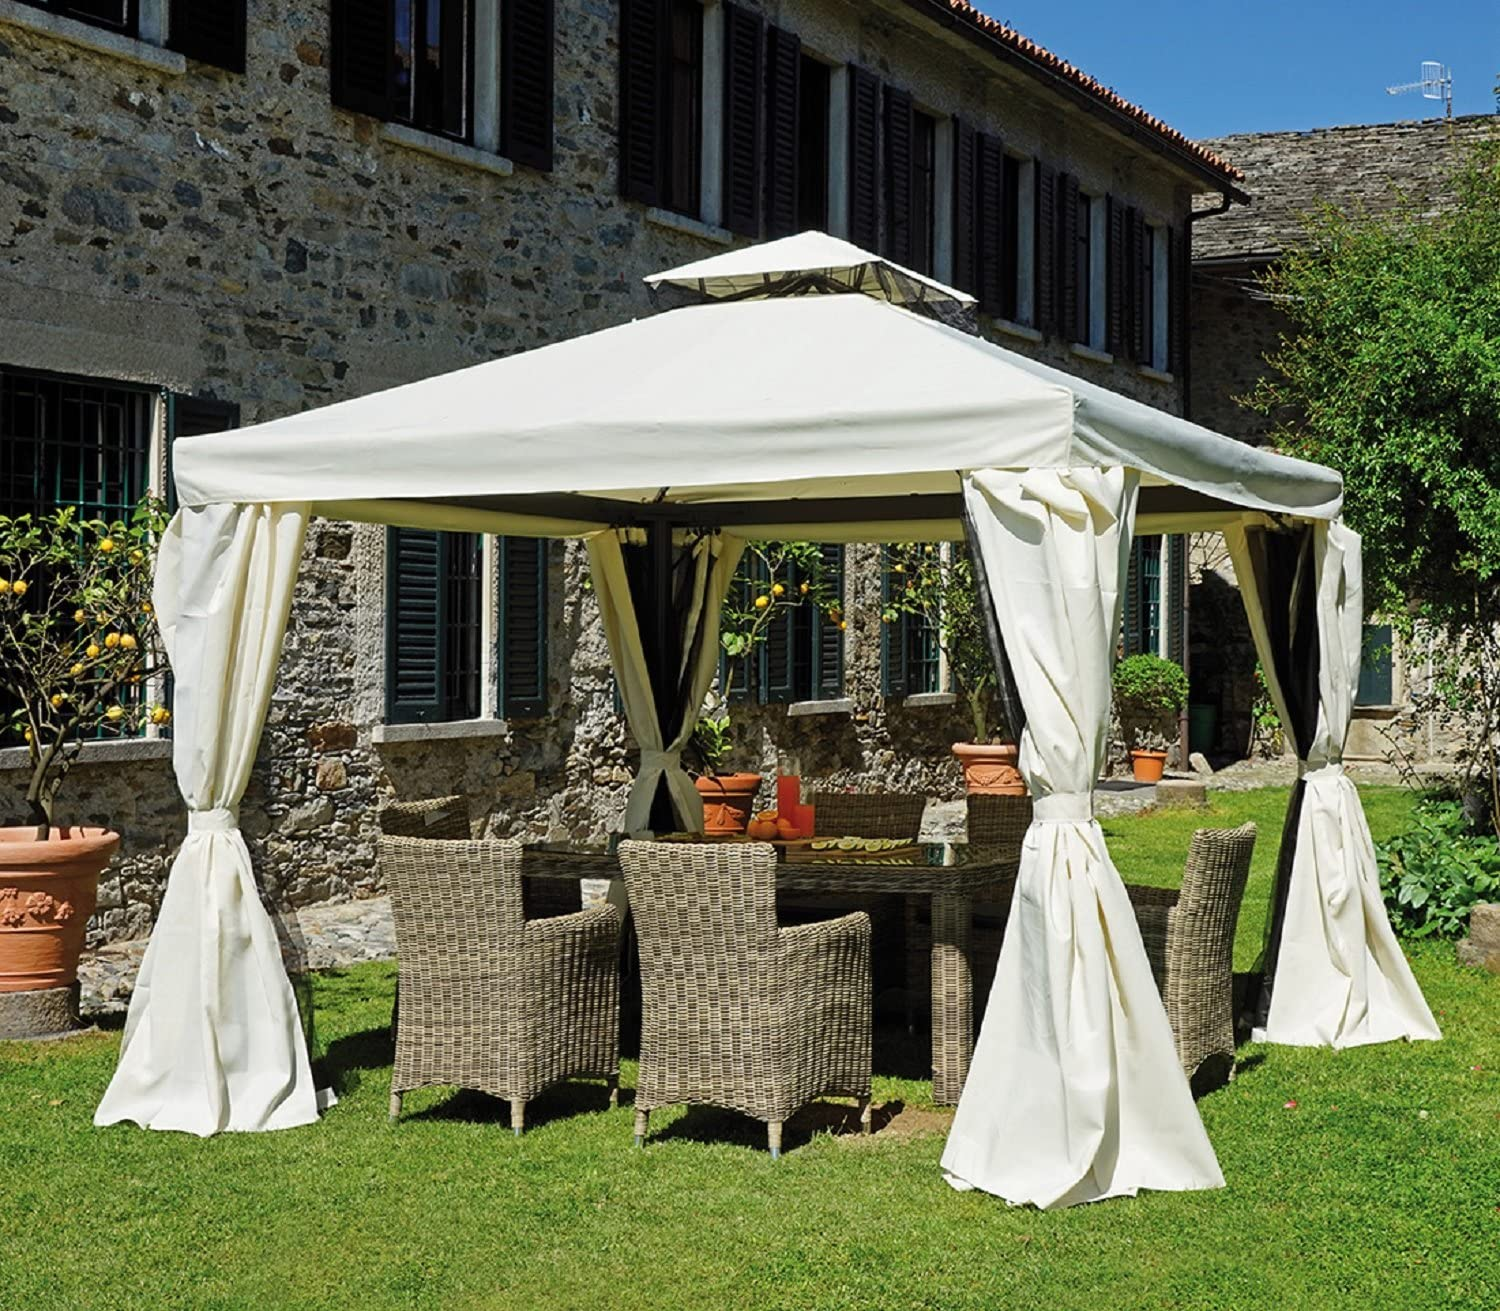 Gazebo cuadrado 3x3 con cortinas laterales: Amazon.es: Jardín